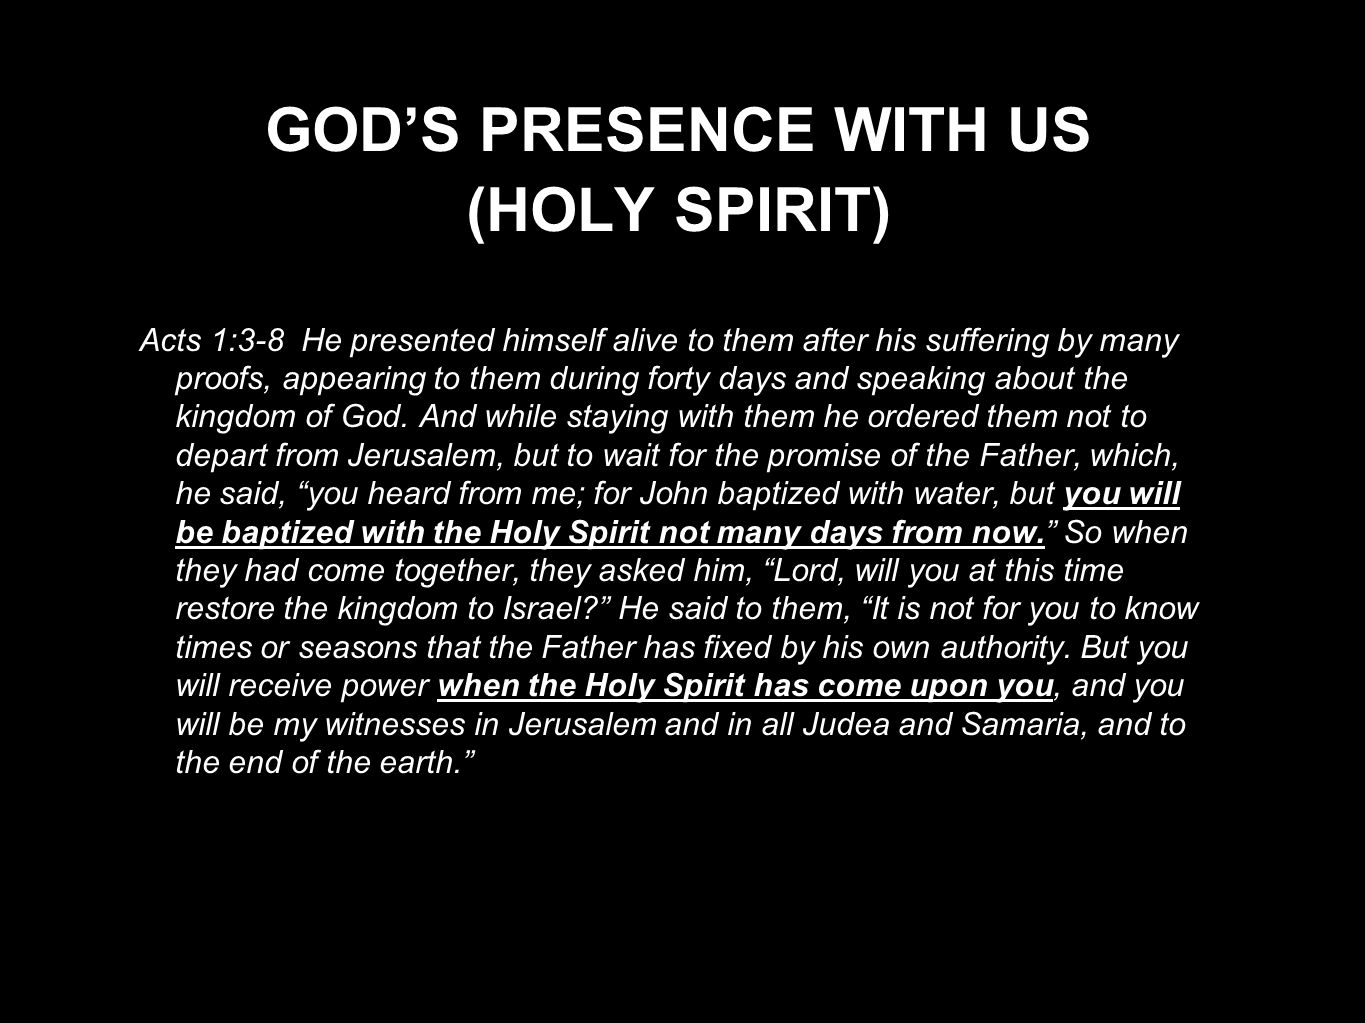 GOD'S PRESENCE WITH US (HOLY SPIRIT) Acts 1:3-8 He presented himself alive to them after his suffering by many proofs, appearing to them during forty